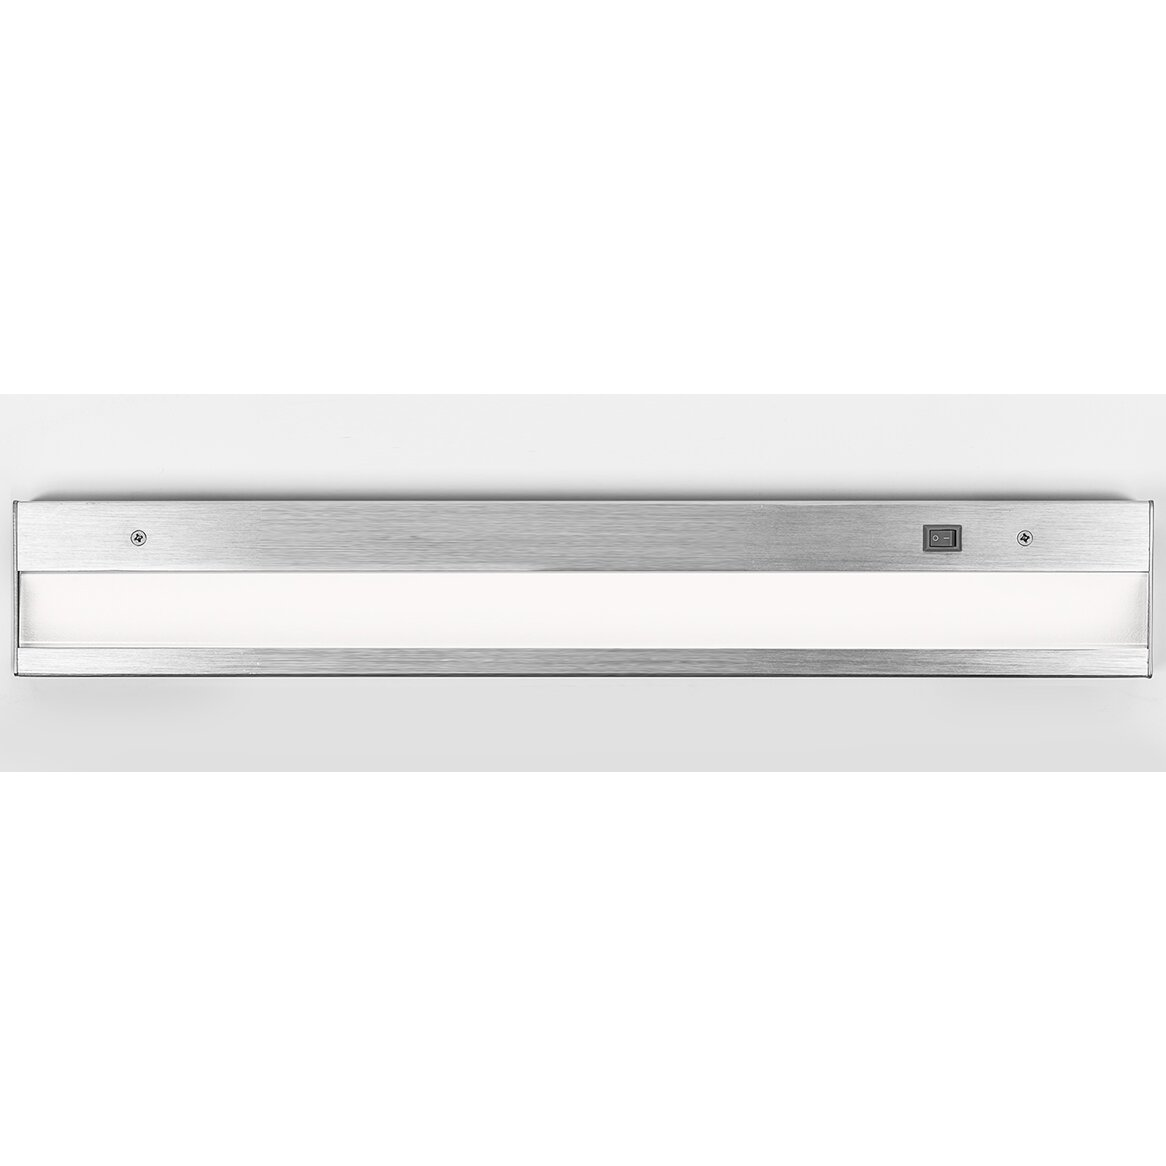 wac led under cabinet lighting reviews | iron blog